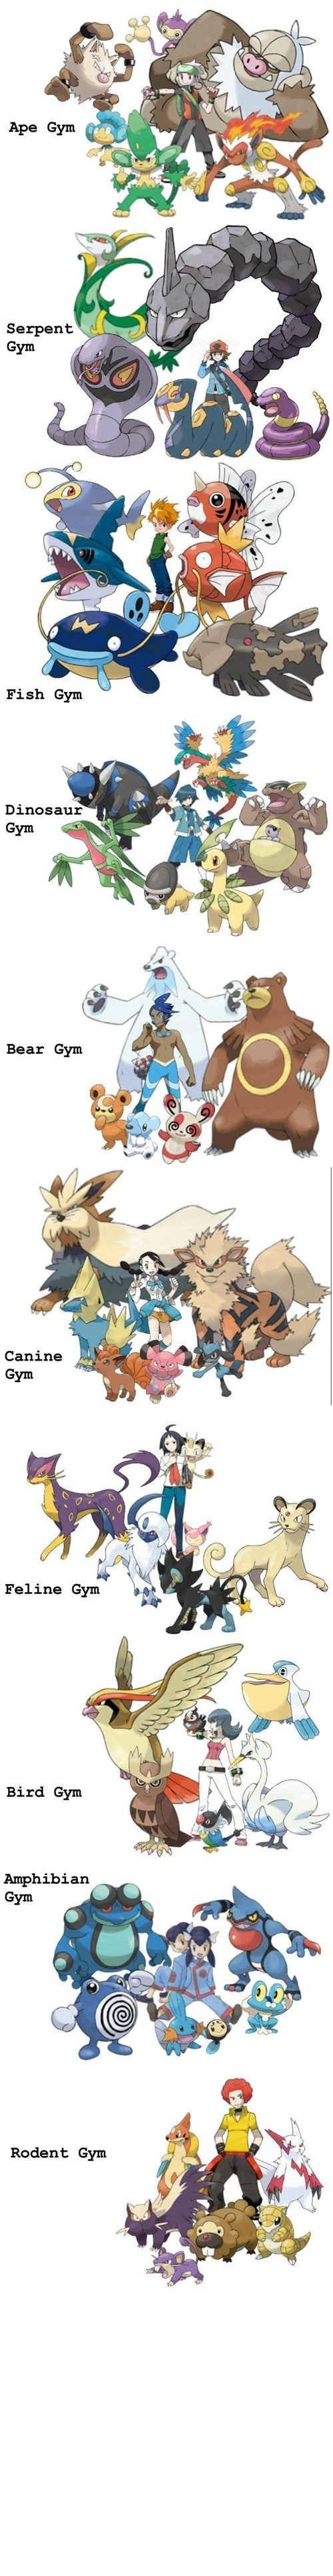 The only thing that makes me mad about this post is that the fish gym leader is a character from Digimon....HE DOESN'T EVEN GO HERE